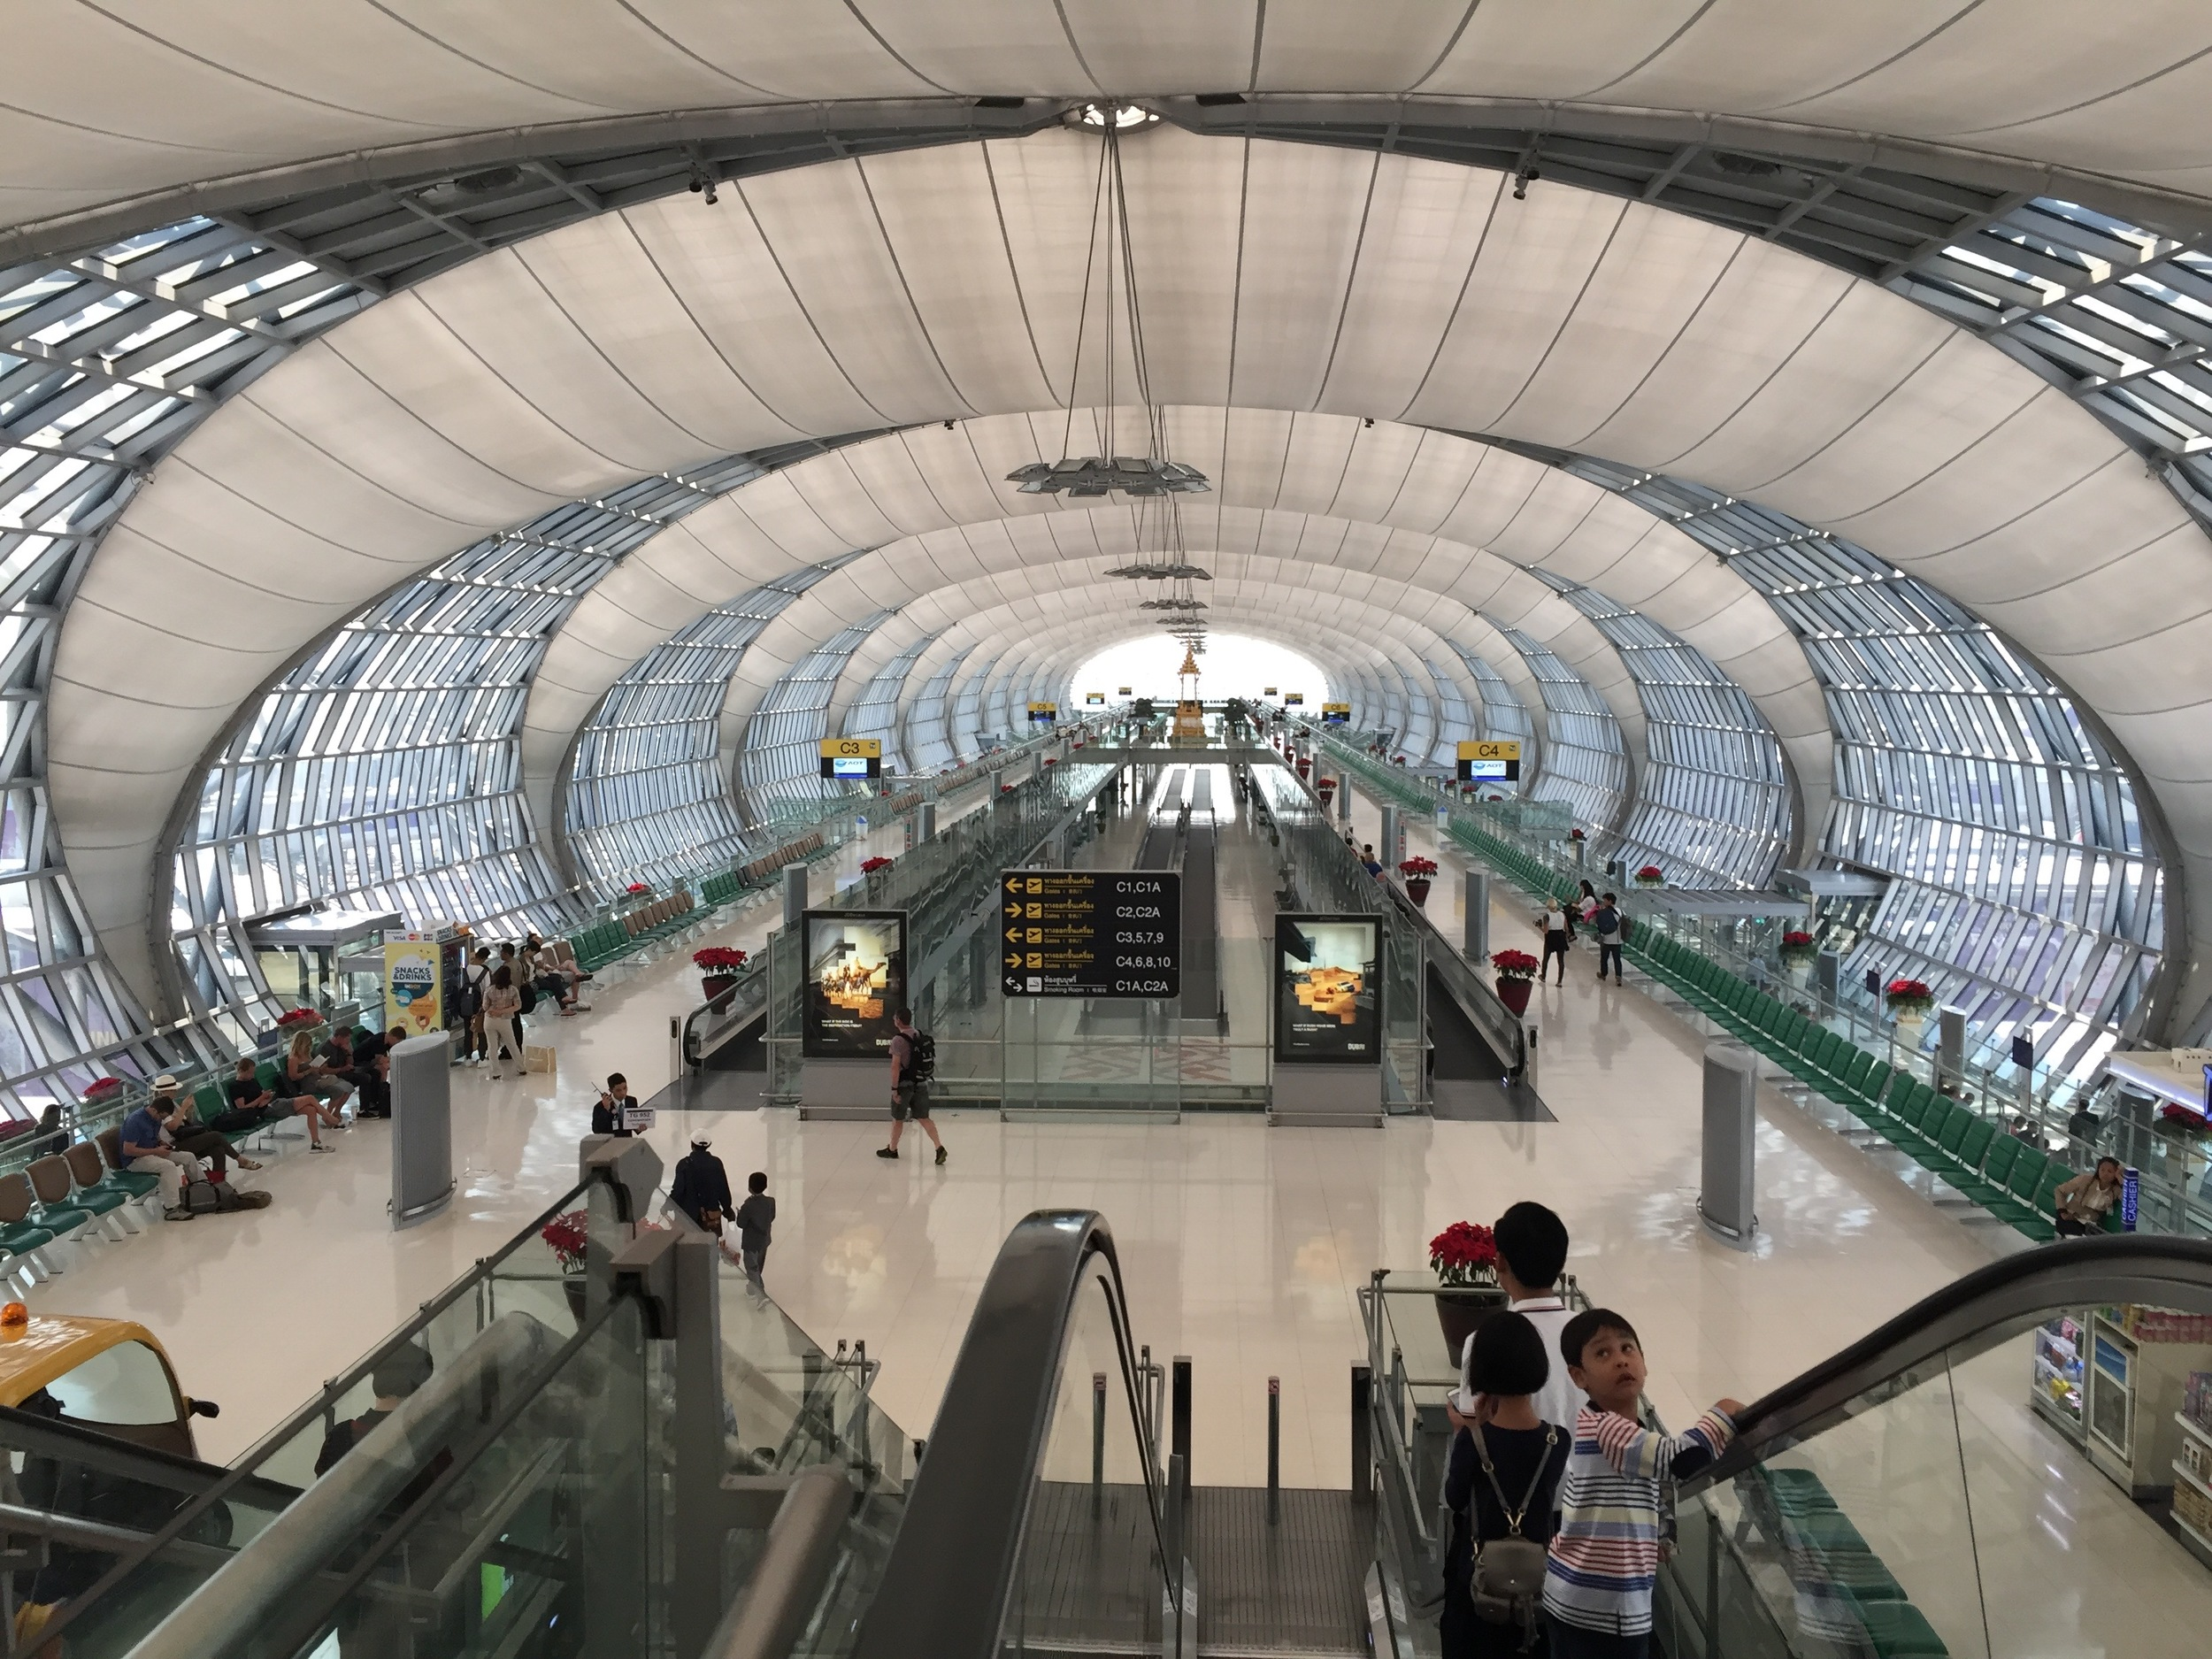 I loved Bangkok's airport. On our way to Myanmar!